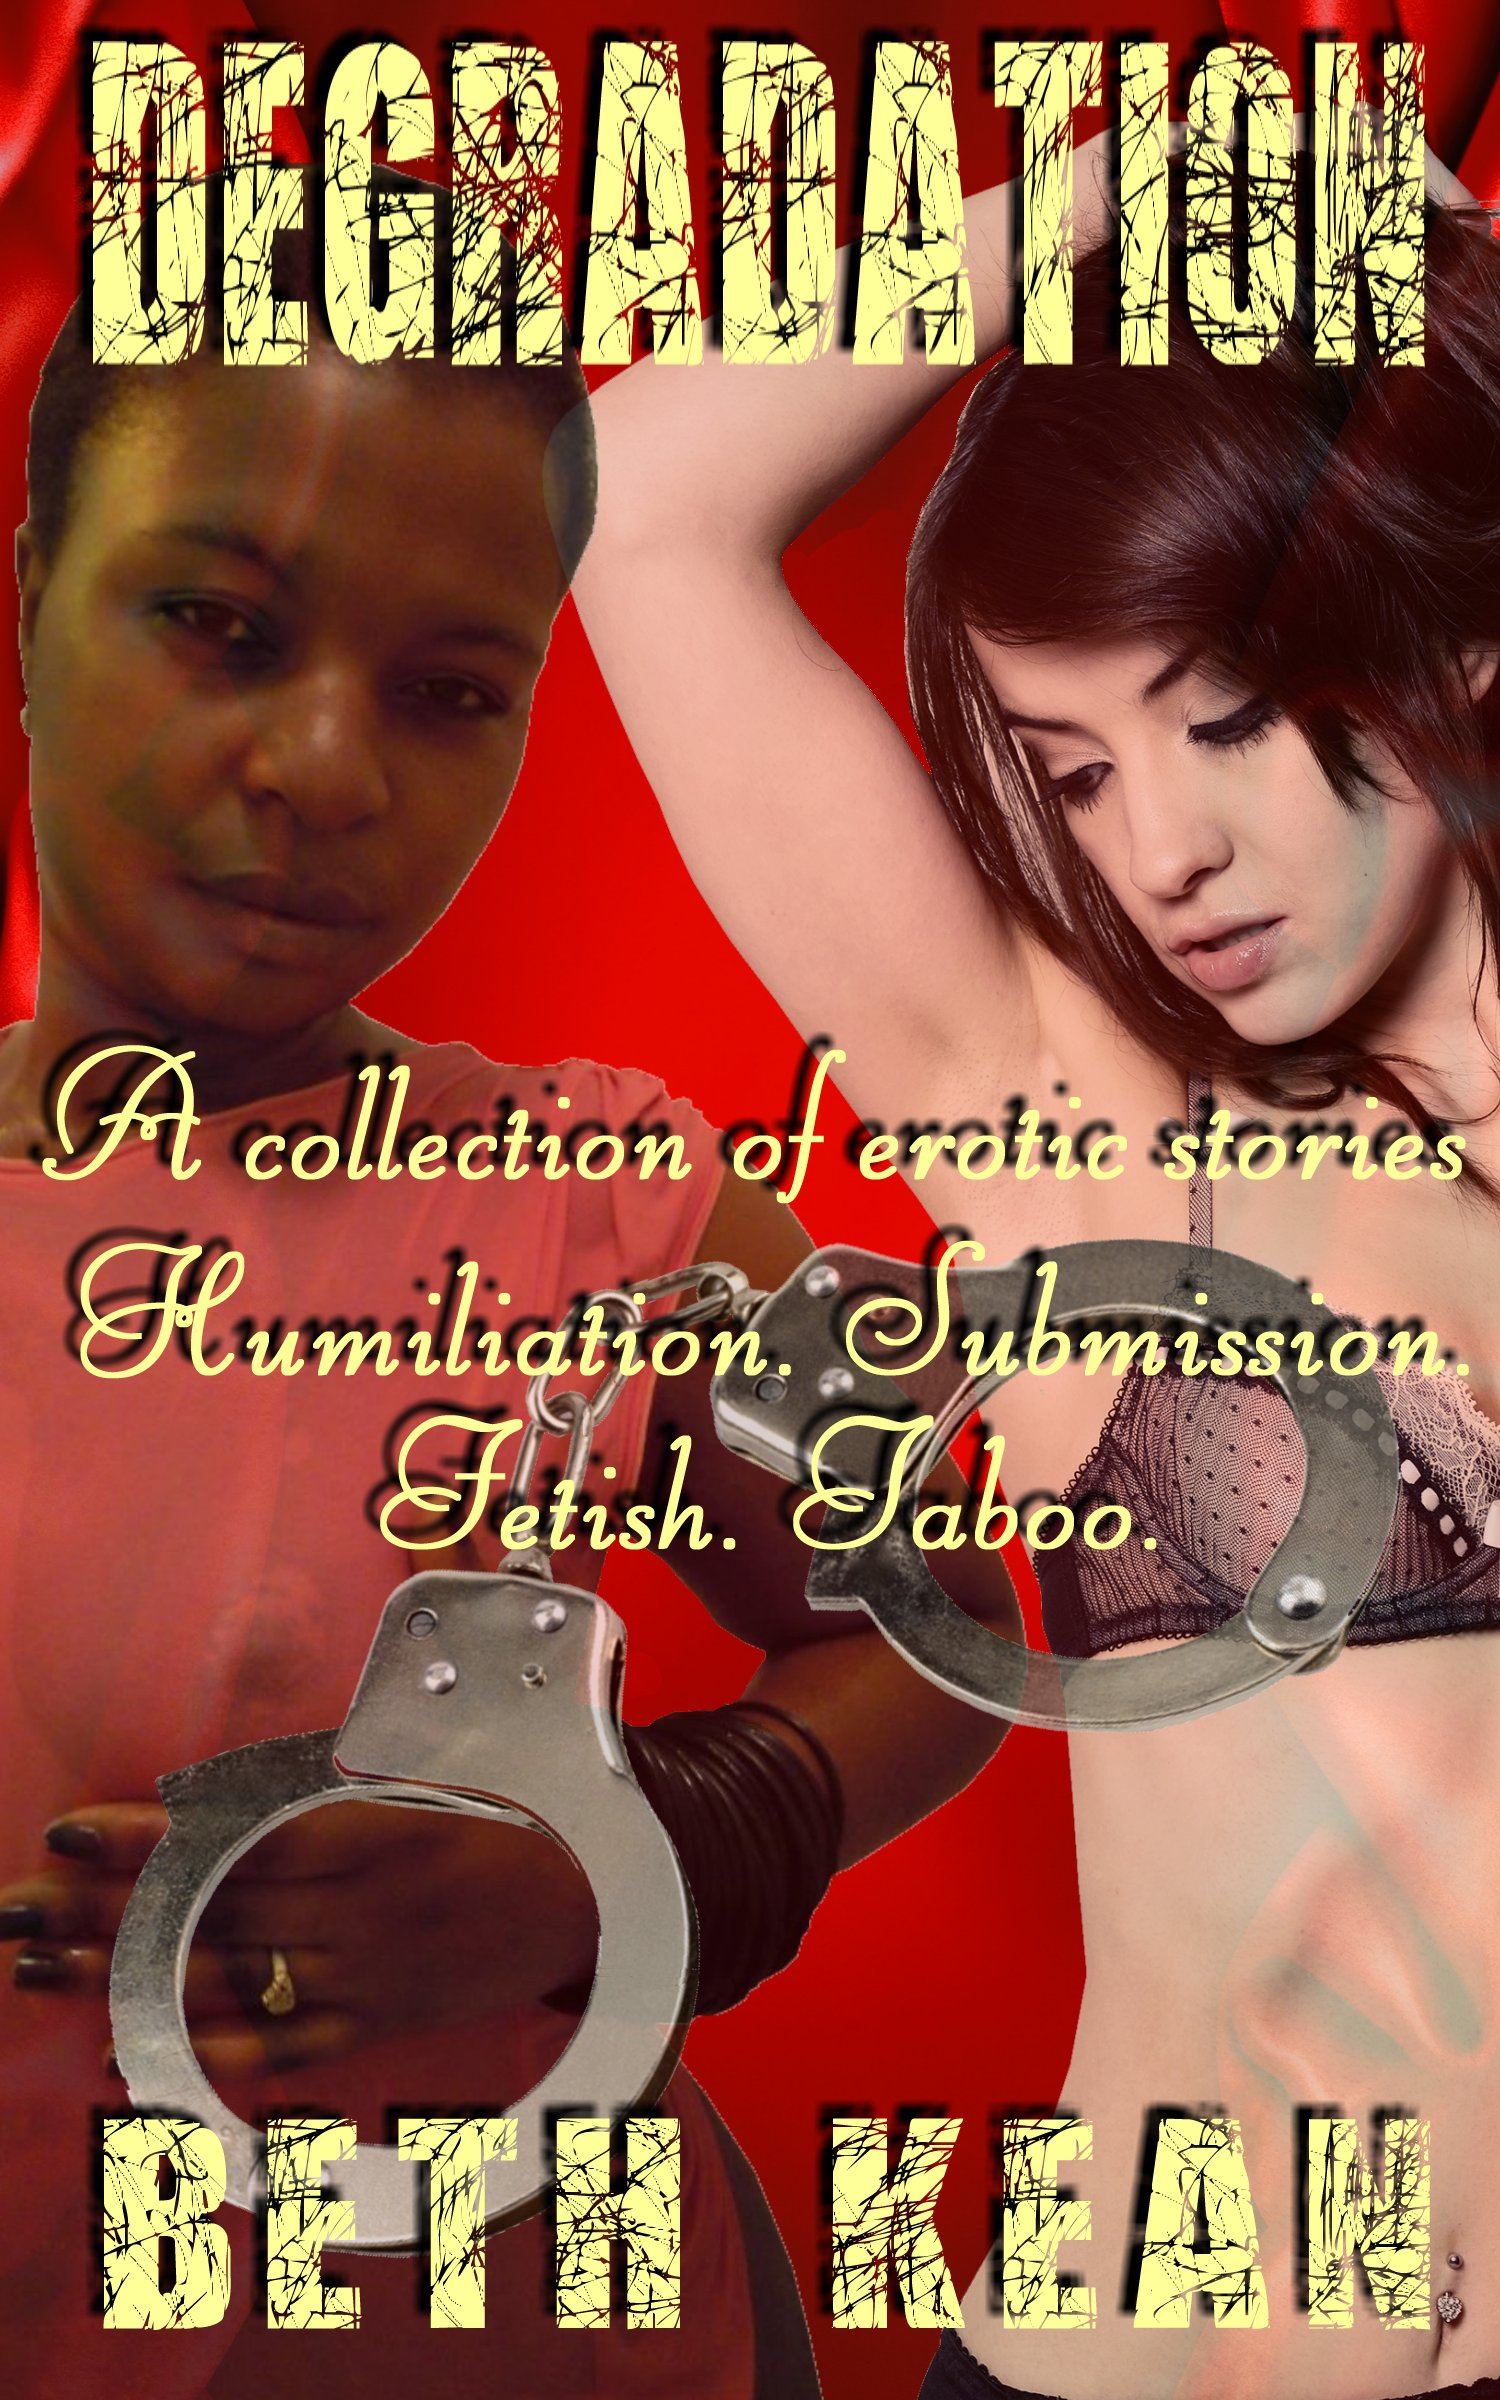 Erotic stories of humiliation and degradation